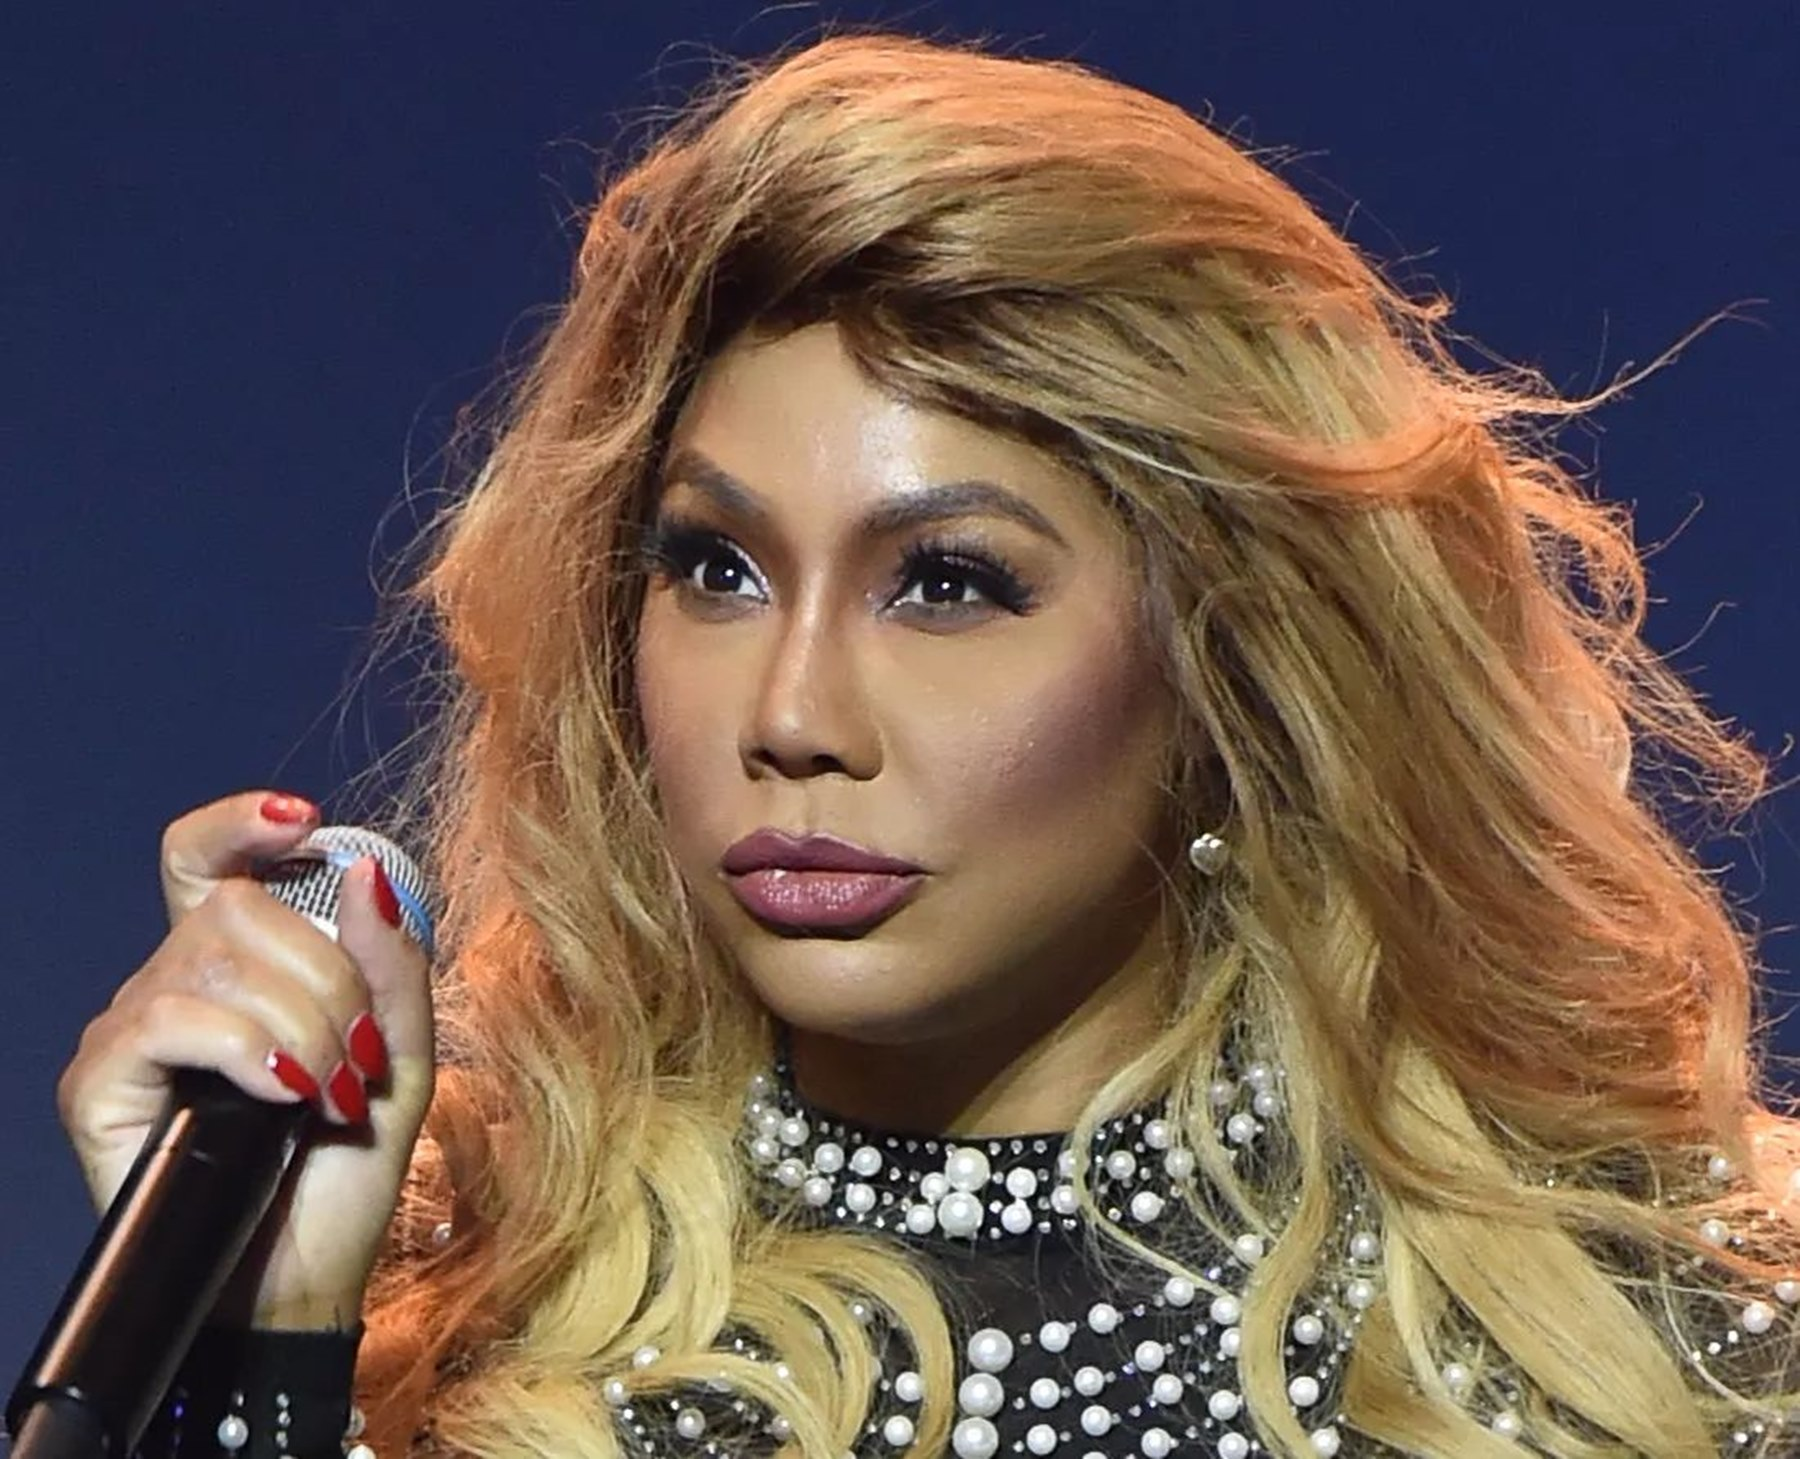 tamar-braxton-has-fans-concerned-after-she-posted-this-new-tweet